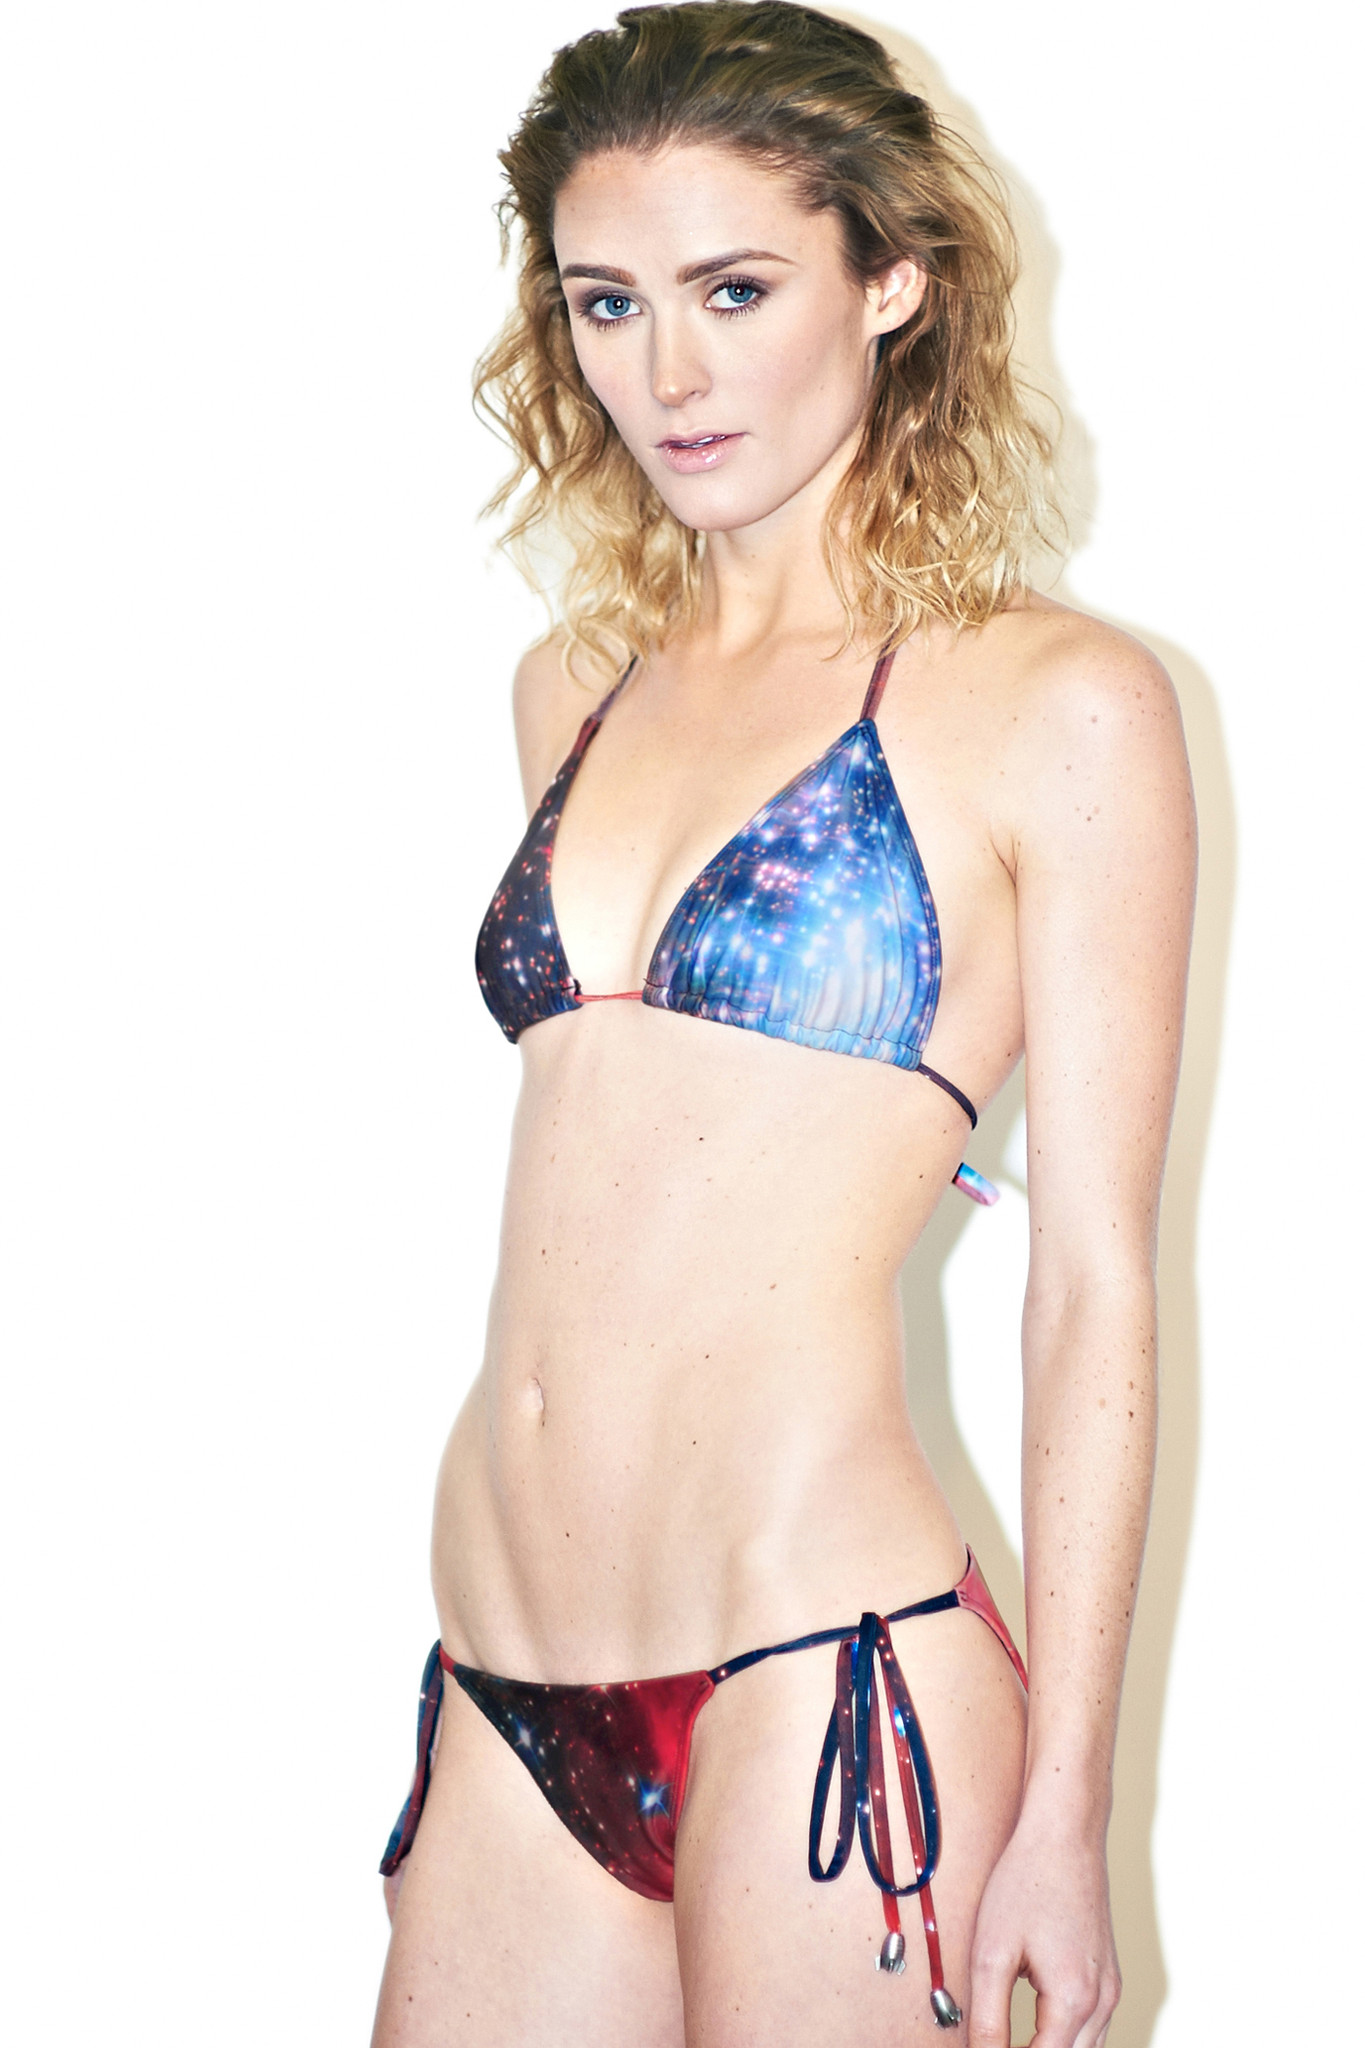 Crimson Galaxy Bikini ($58 each piece)